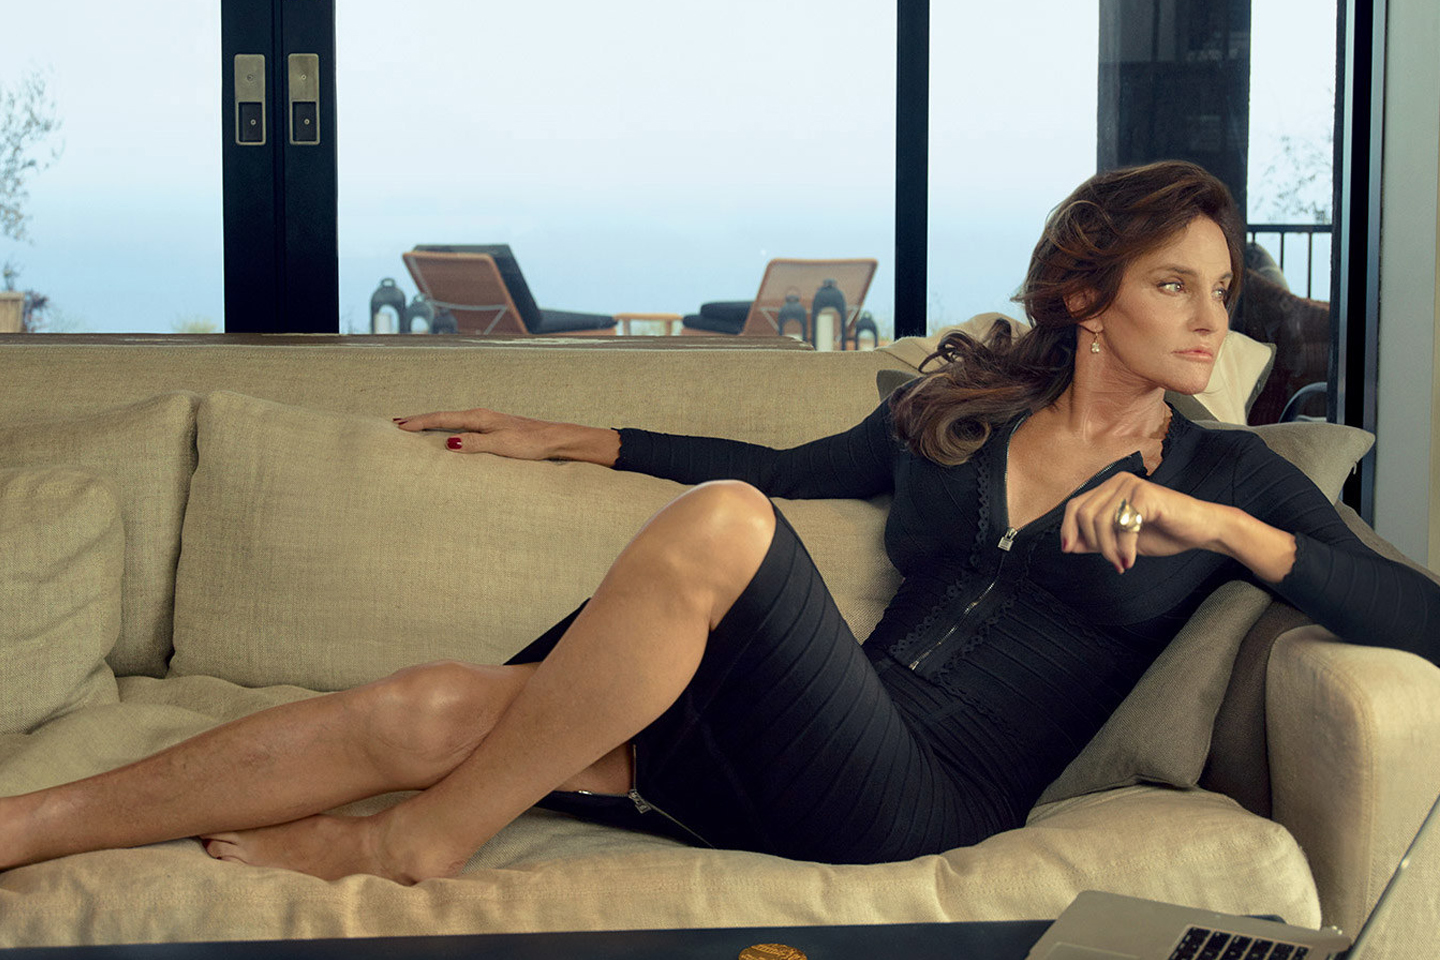 Why Caitlyn Jenner Thinks It's Cute Being Barred